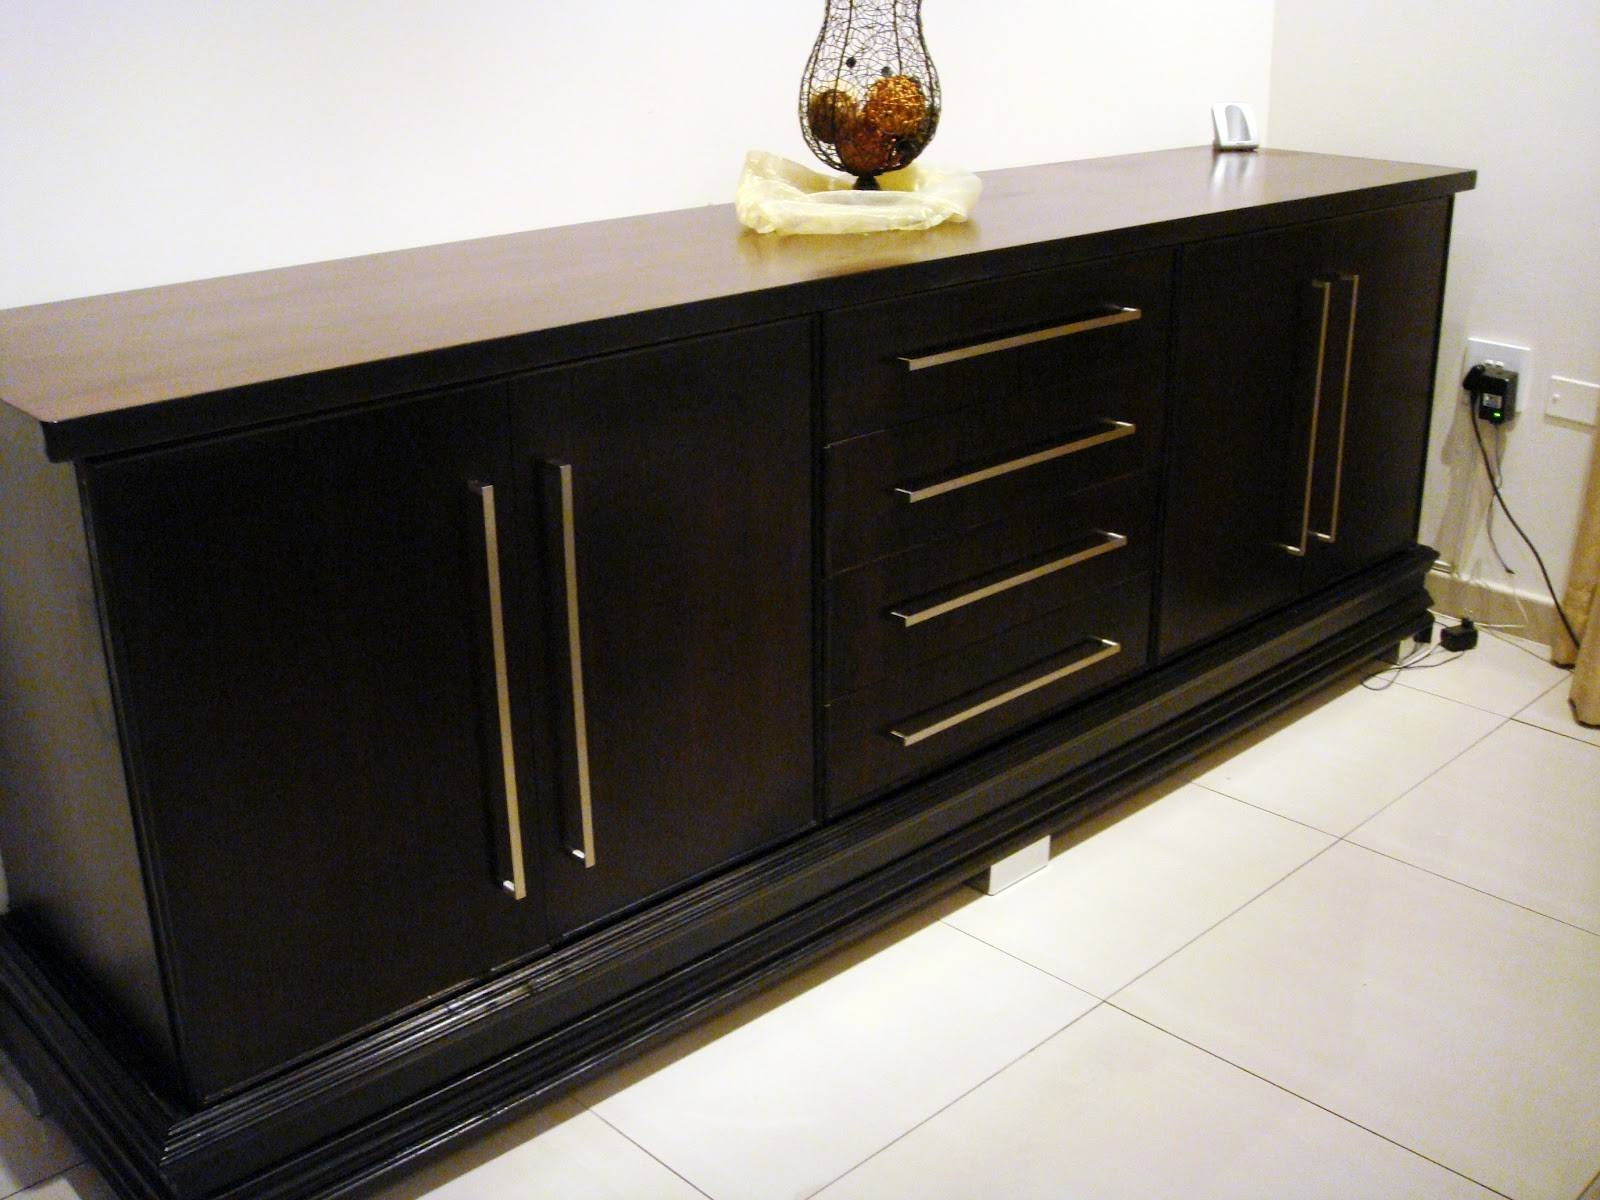 Dining Room Bar Sideboard | Latest Home Decor And Design Pertaining To 2017 Dining Room With Sideboards (#3 of 15)